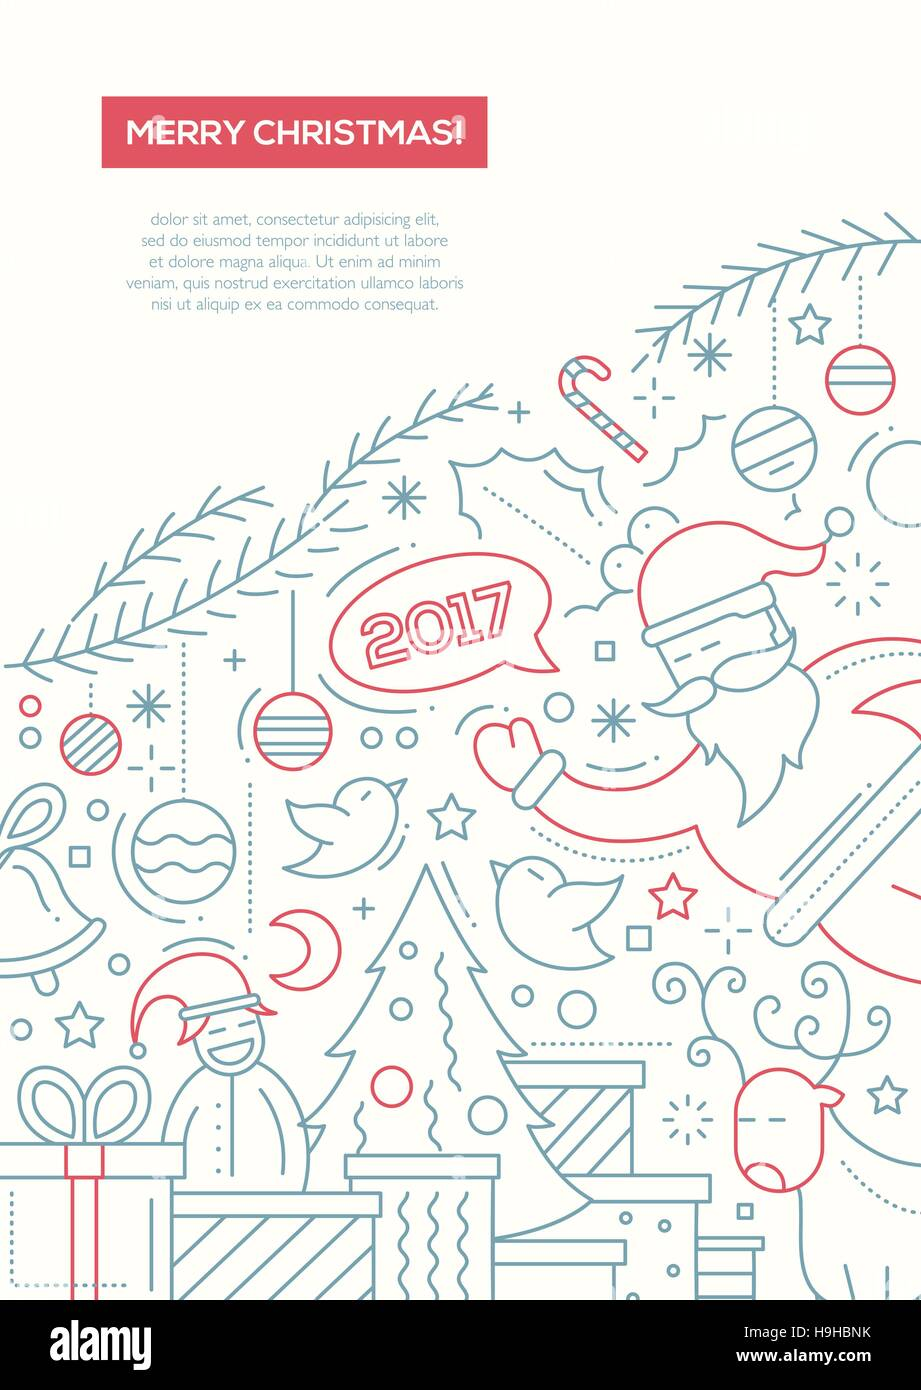 merry christmas and happy new year 2017 vector plain line design brochure poster flyer presentation template a4 size layout